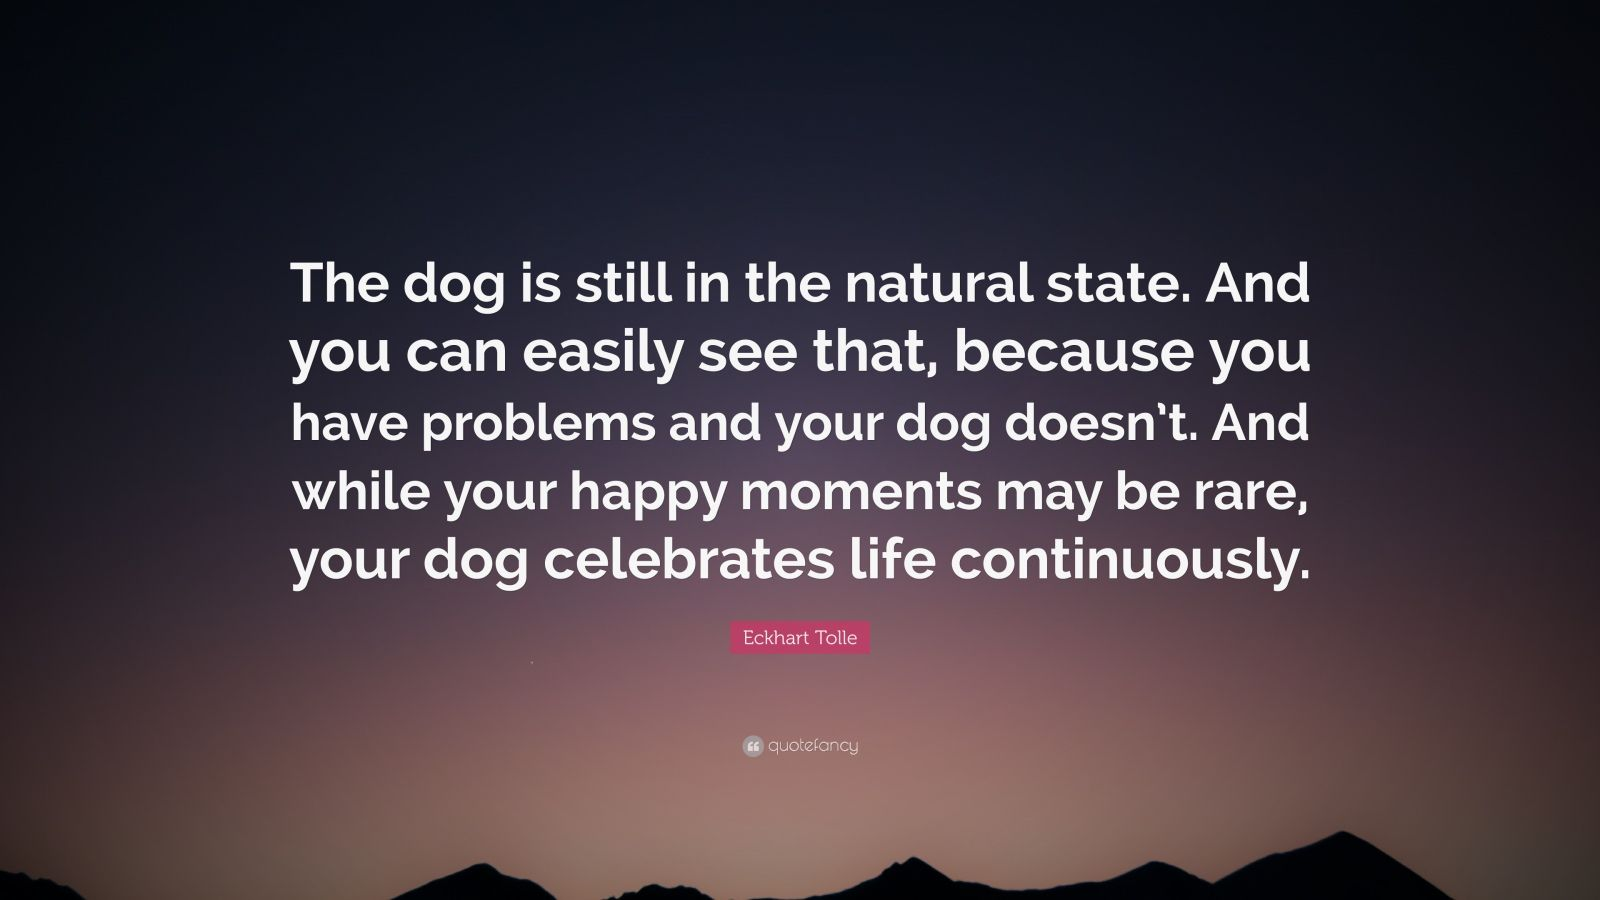 """Eckhart Tolle Quote: """"The dog is still in the natural state. And you can easily see that, because you have problems and your dog doesn't. And while your happy moments may be rare, your dog celebrates life continuously."""""""